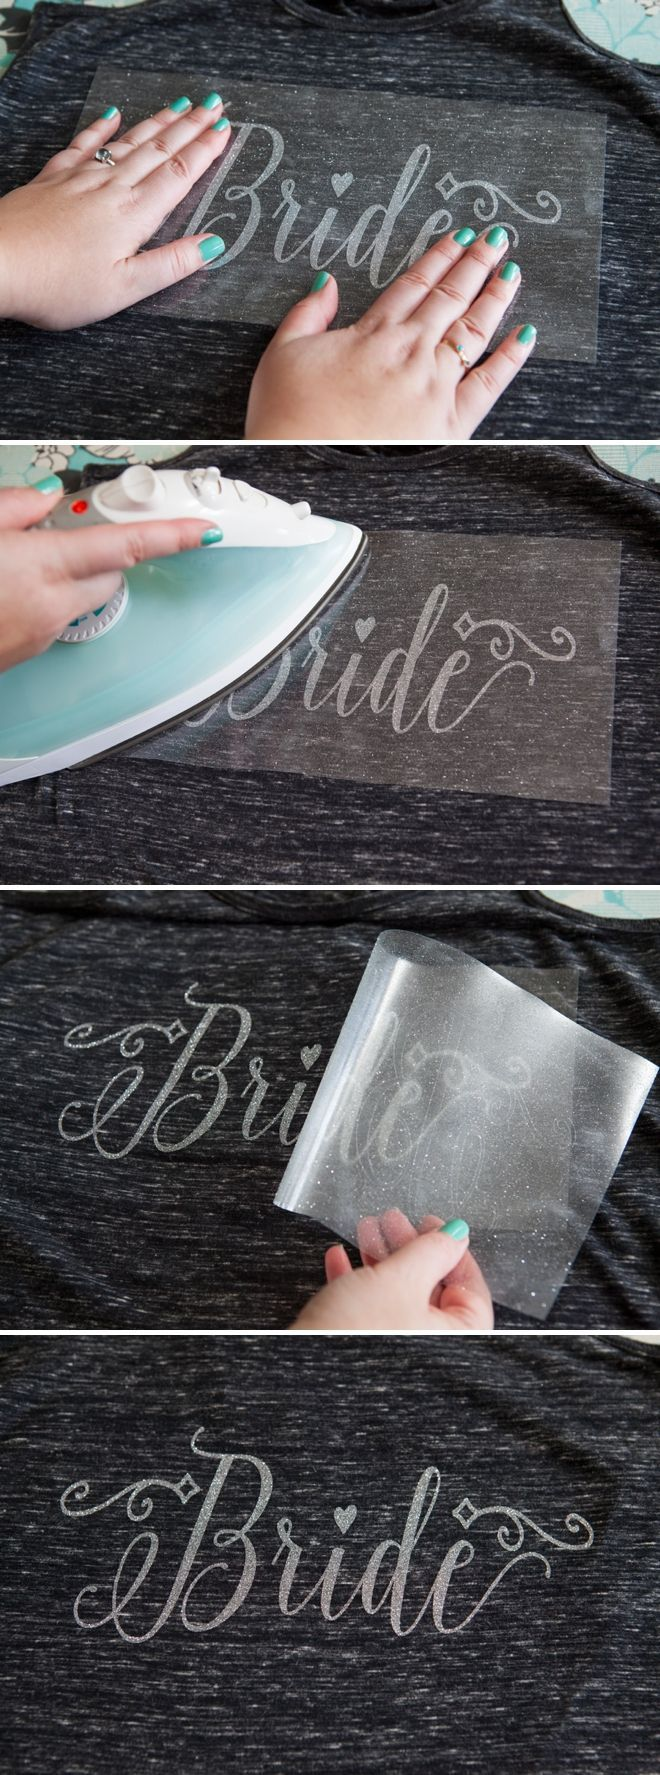 """How to make your own Iron-on glitter """"Bride"""" tank top - with free design files!!"""